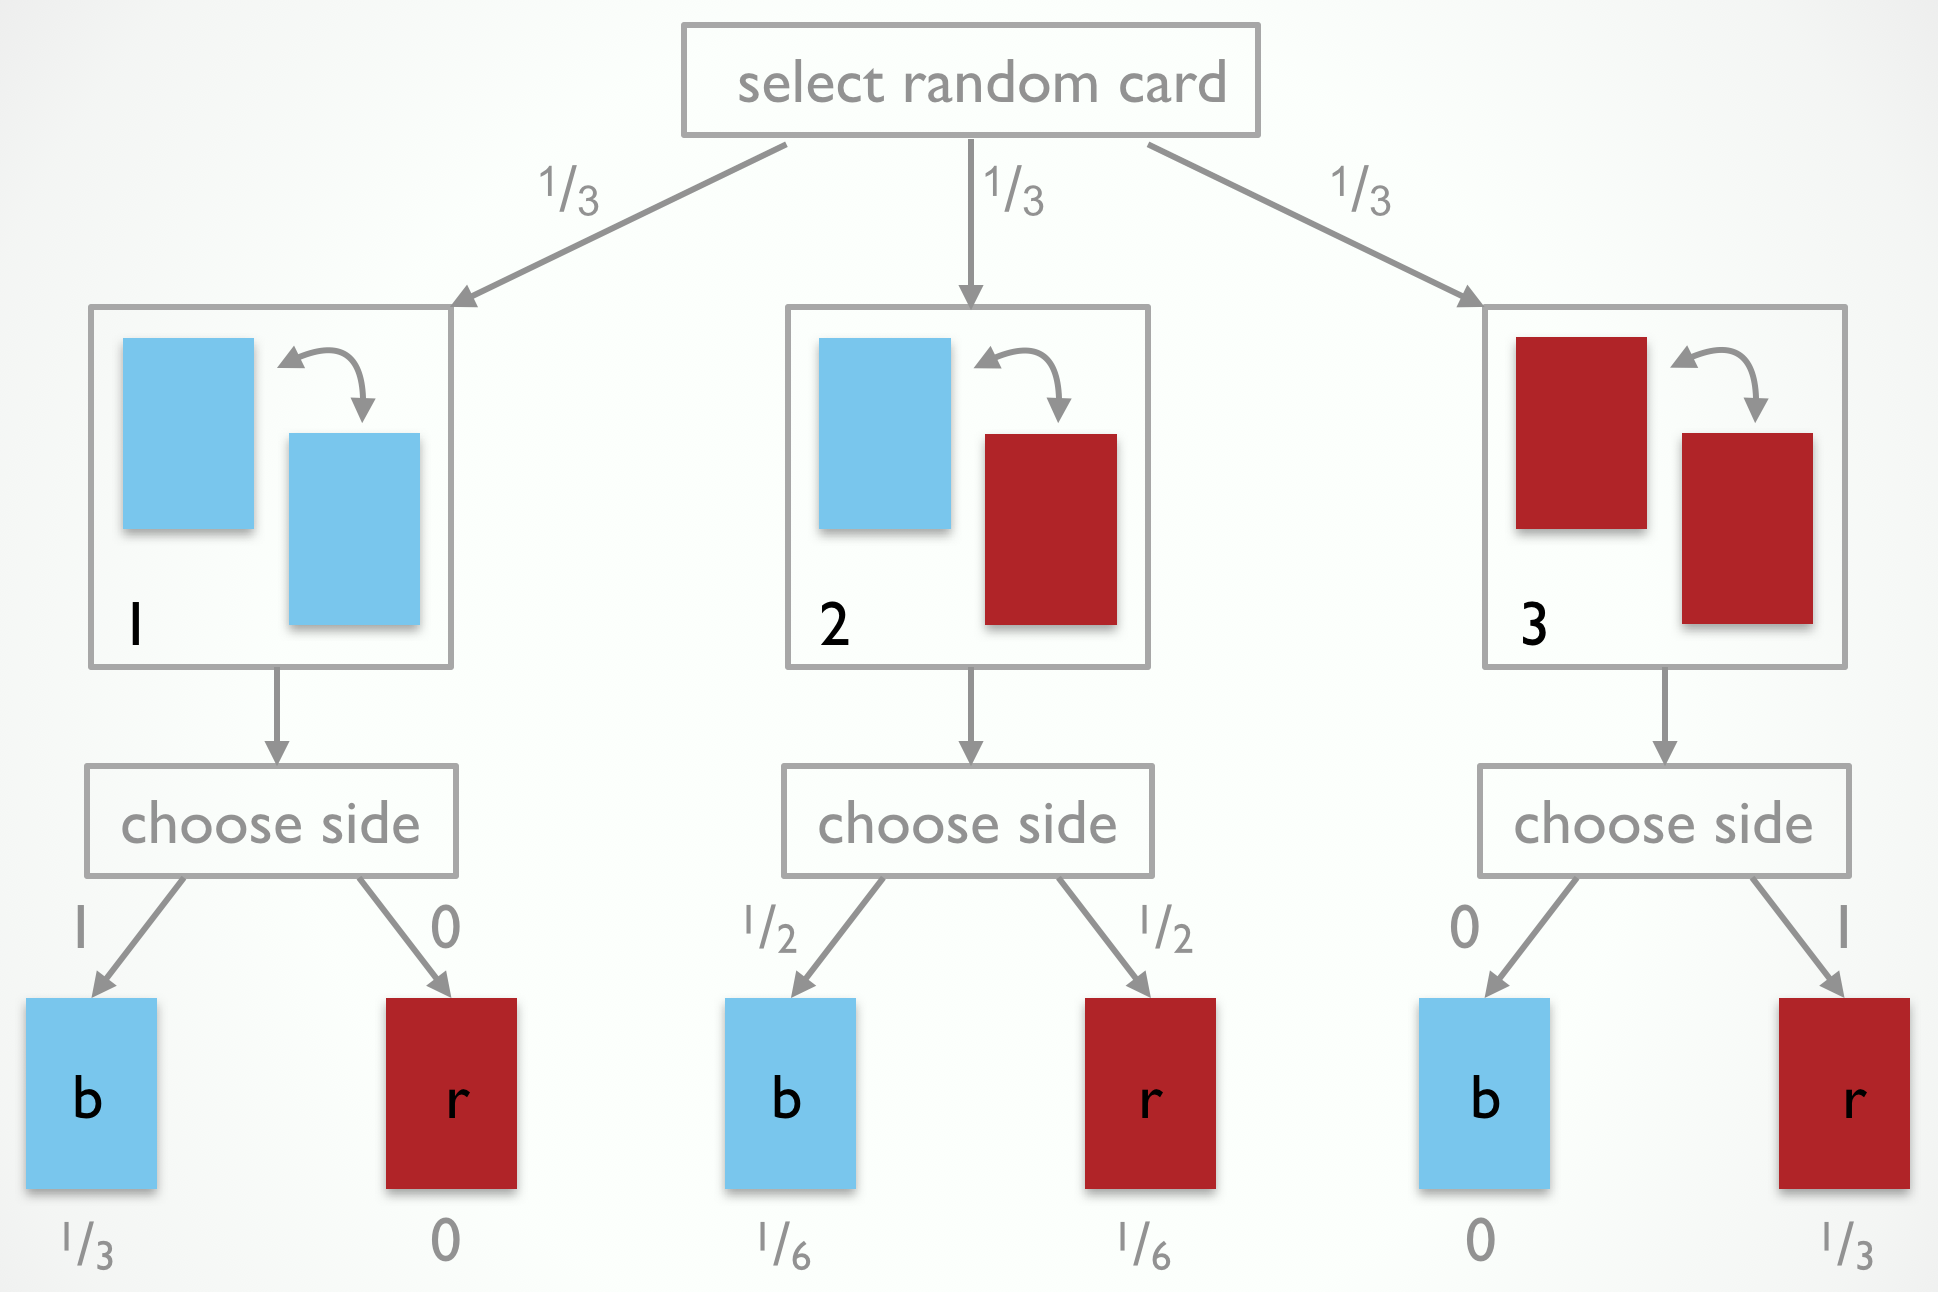 The observation-generating process for the 3-card problem. Jones selects a random card, then chooses a random side of it.